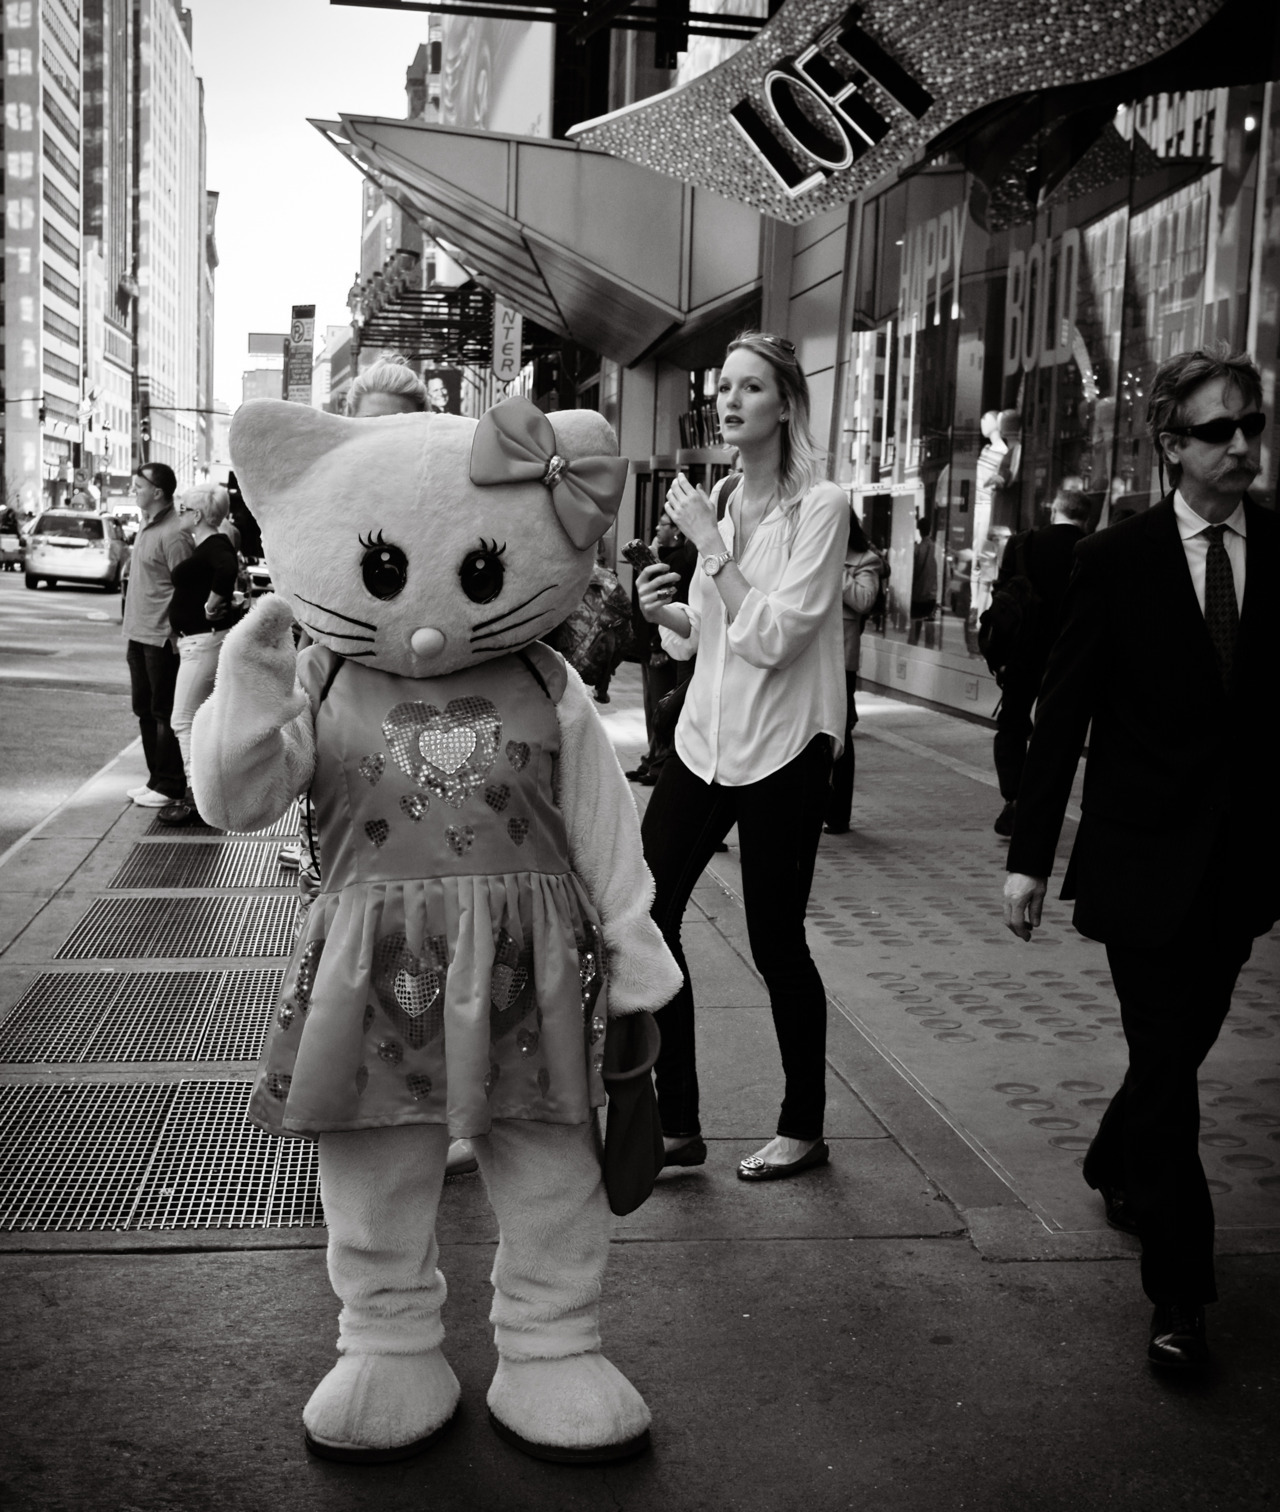 75 - Hello Kitty   #366Project #FujiX100